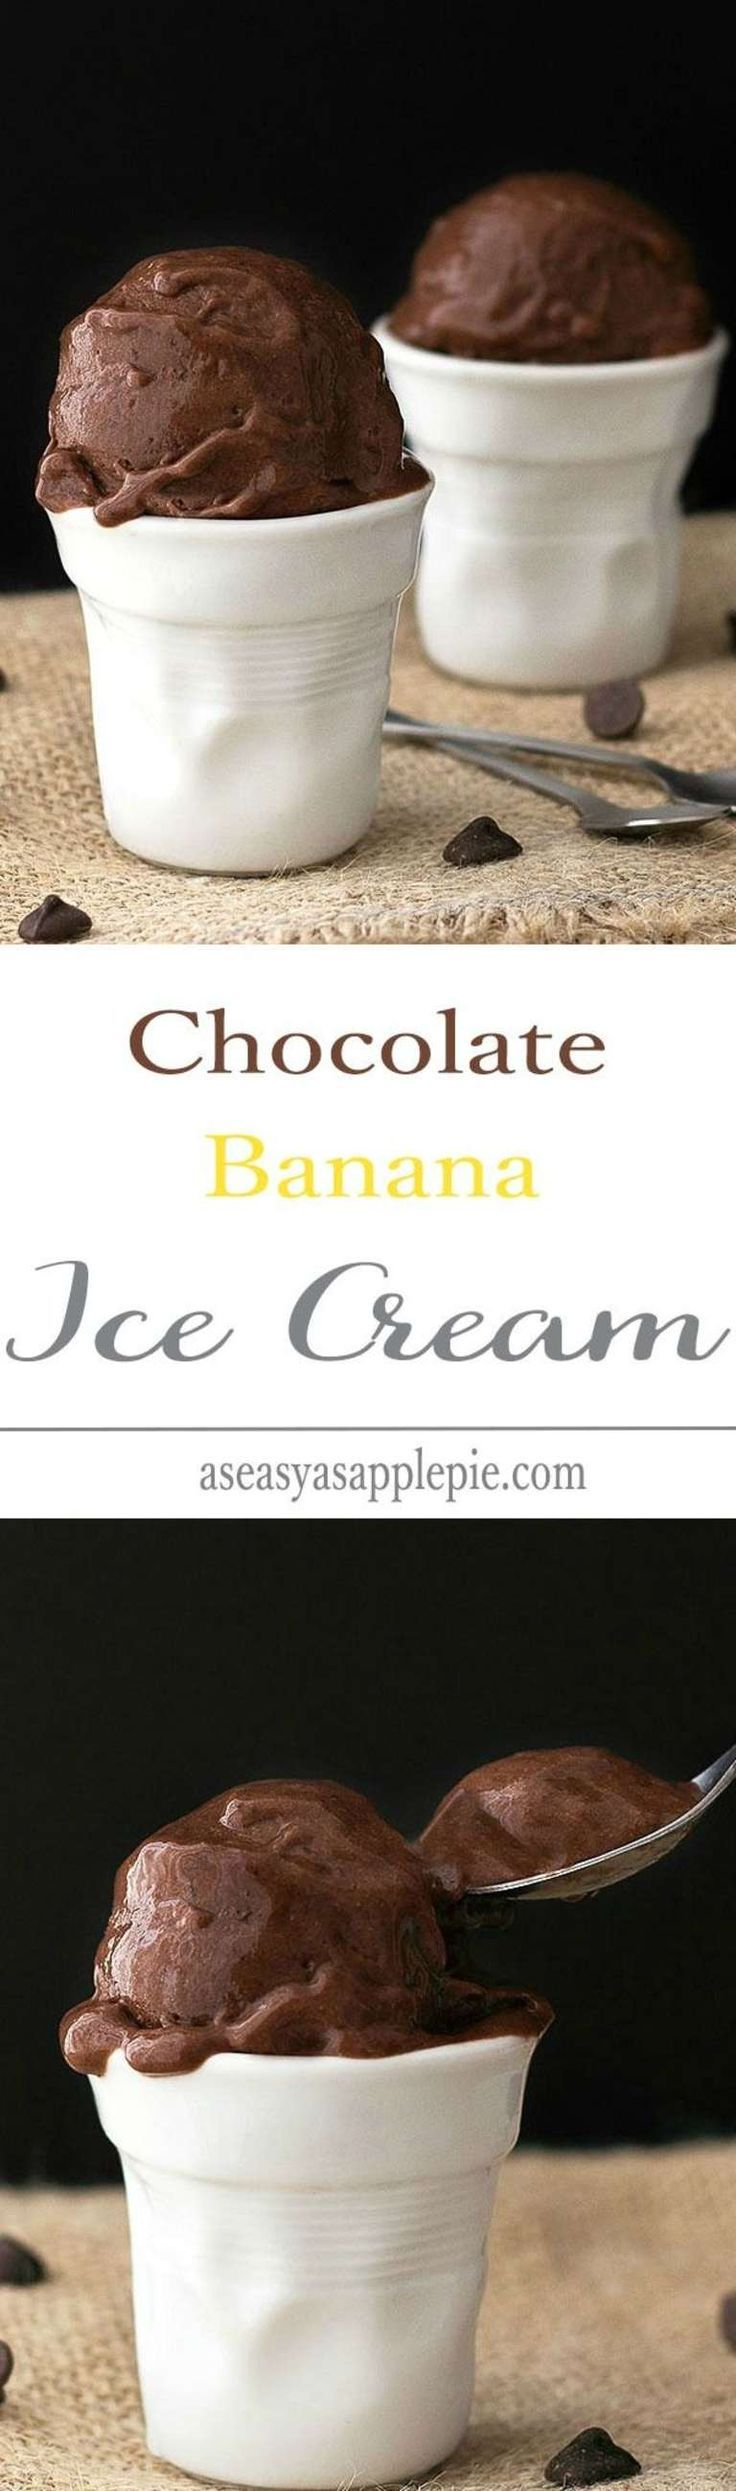 Chocolate Banana Ice Cream - just two ingredients and a blender needed to make this healthy creamy treat. No Cream, No Sugar, NO GUILT!  https://www.pinterest.com/pin/218917231870852521/